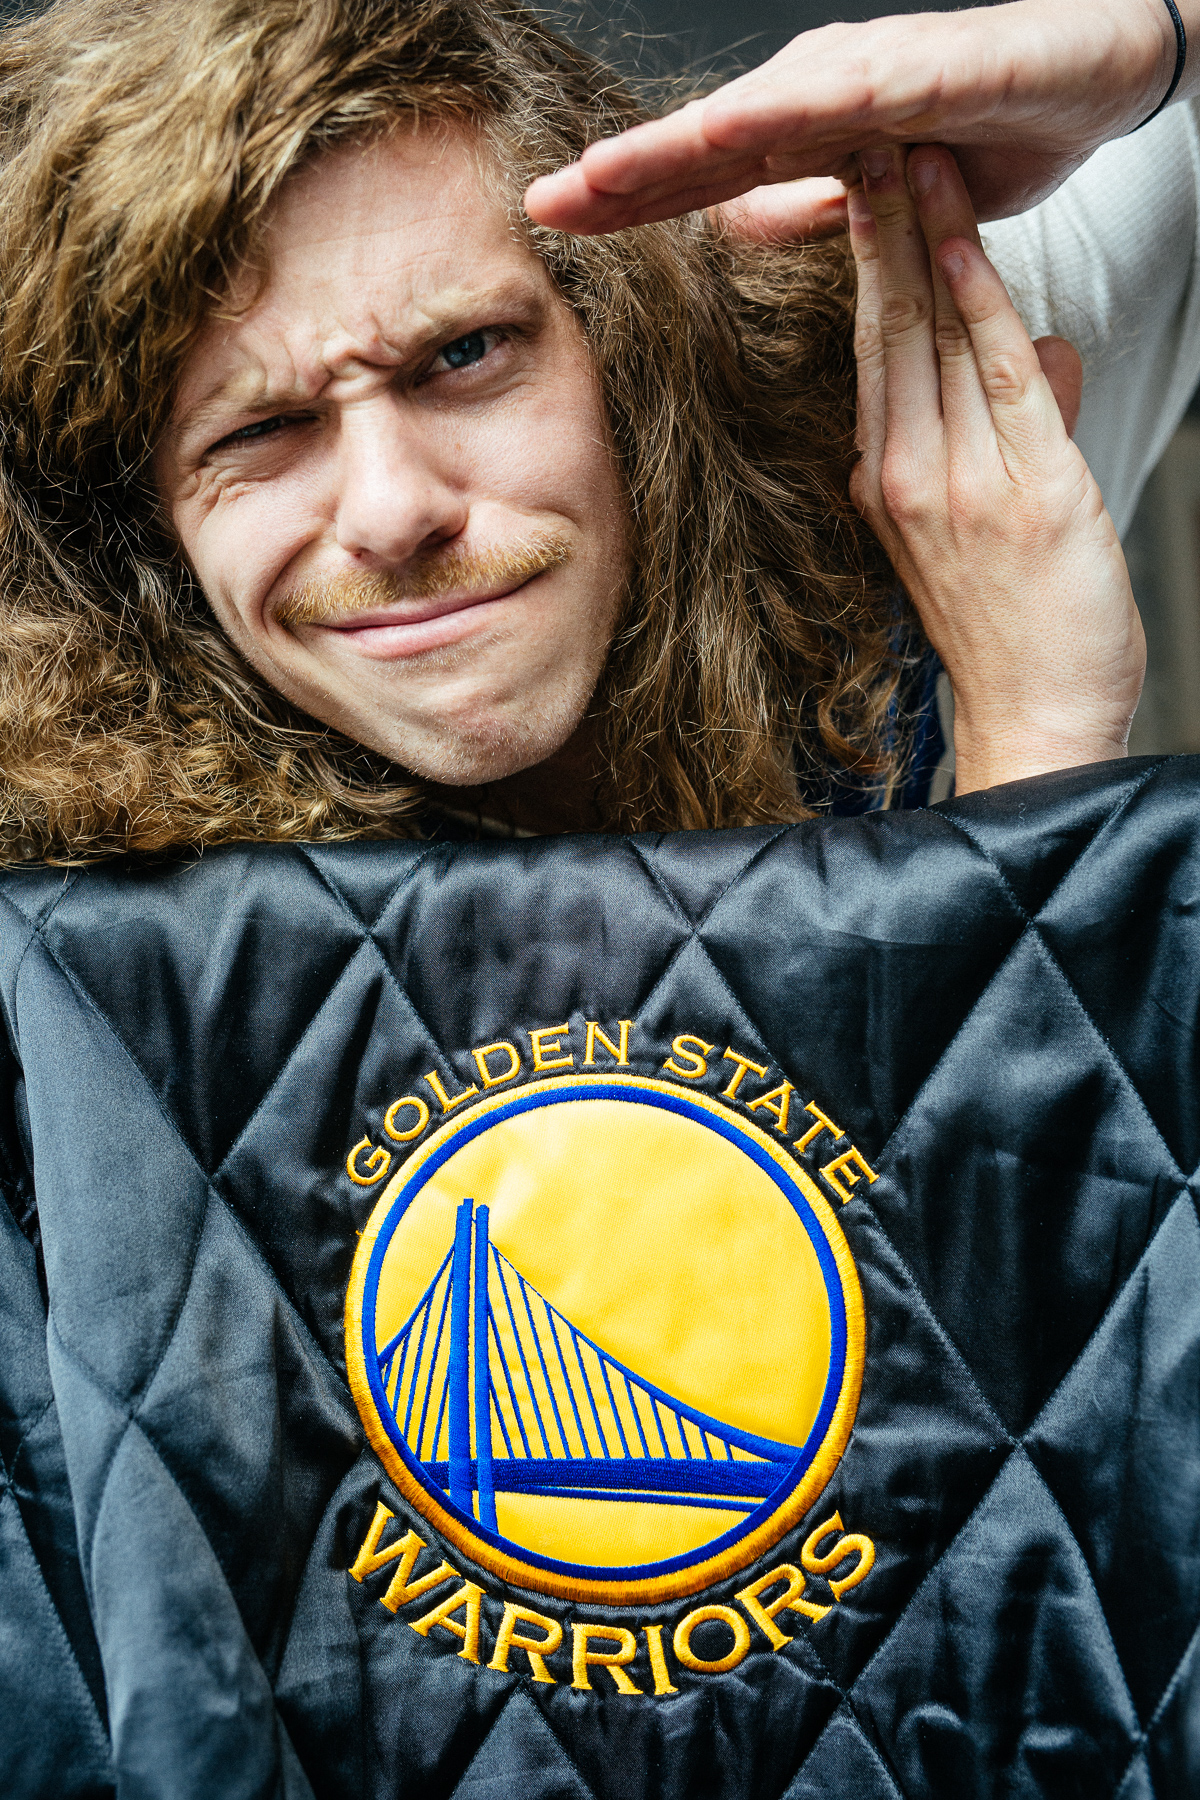 Blake Anderson for PAPER